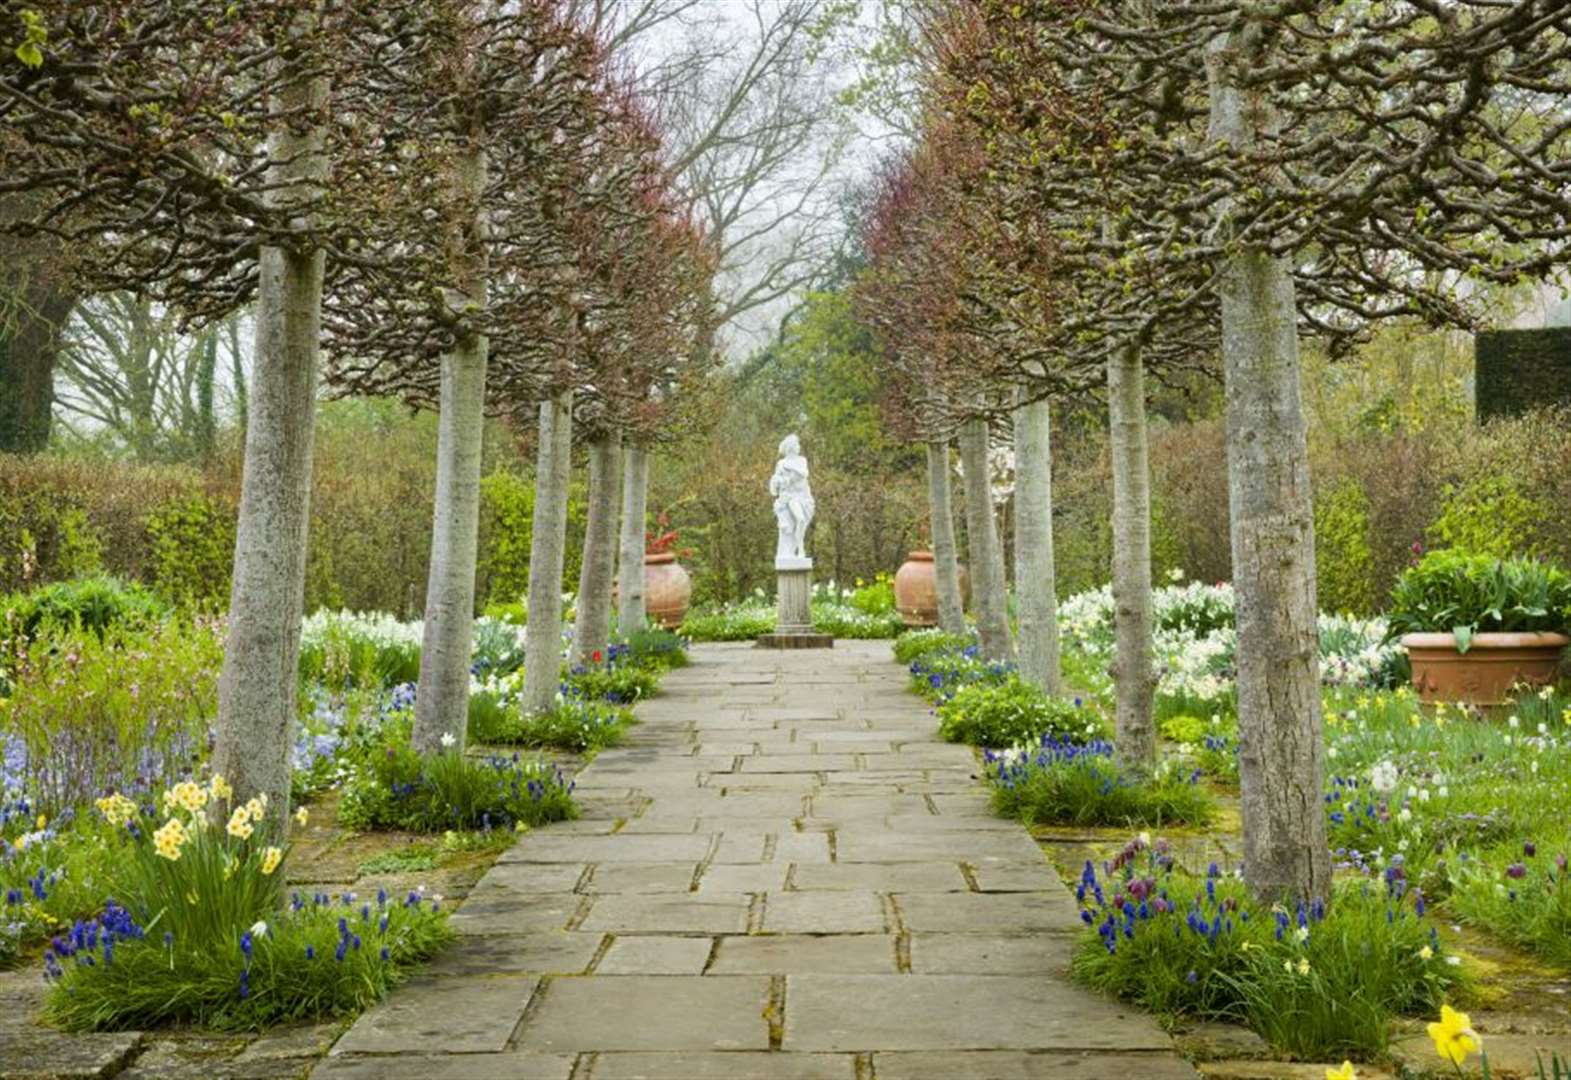 Take a wintry walk in a world famous garden